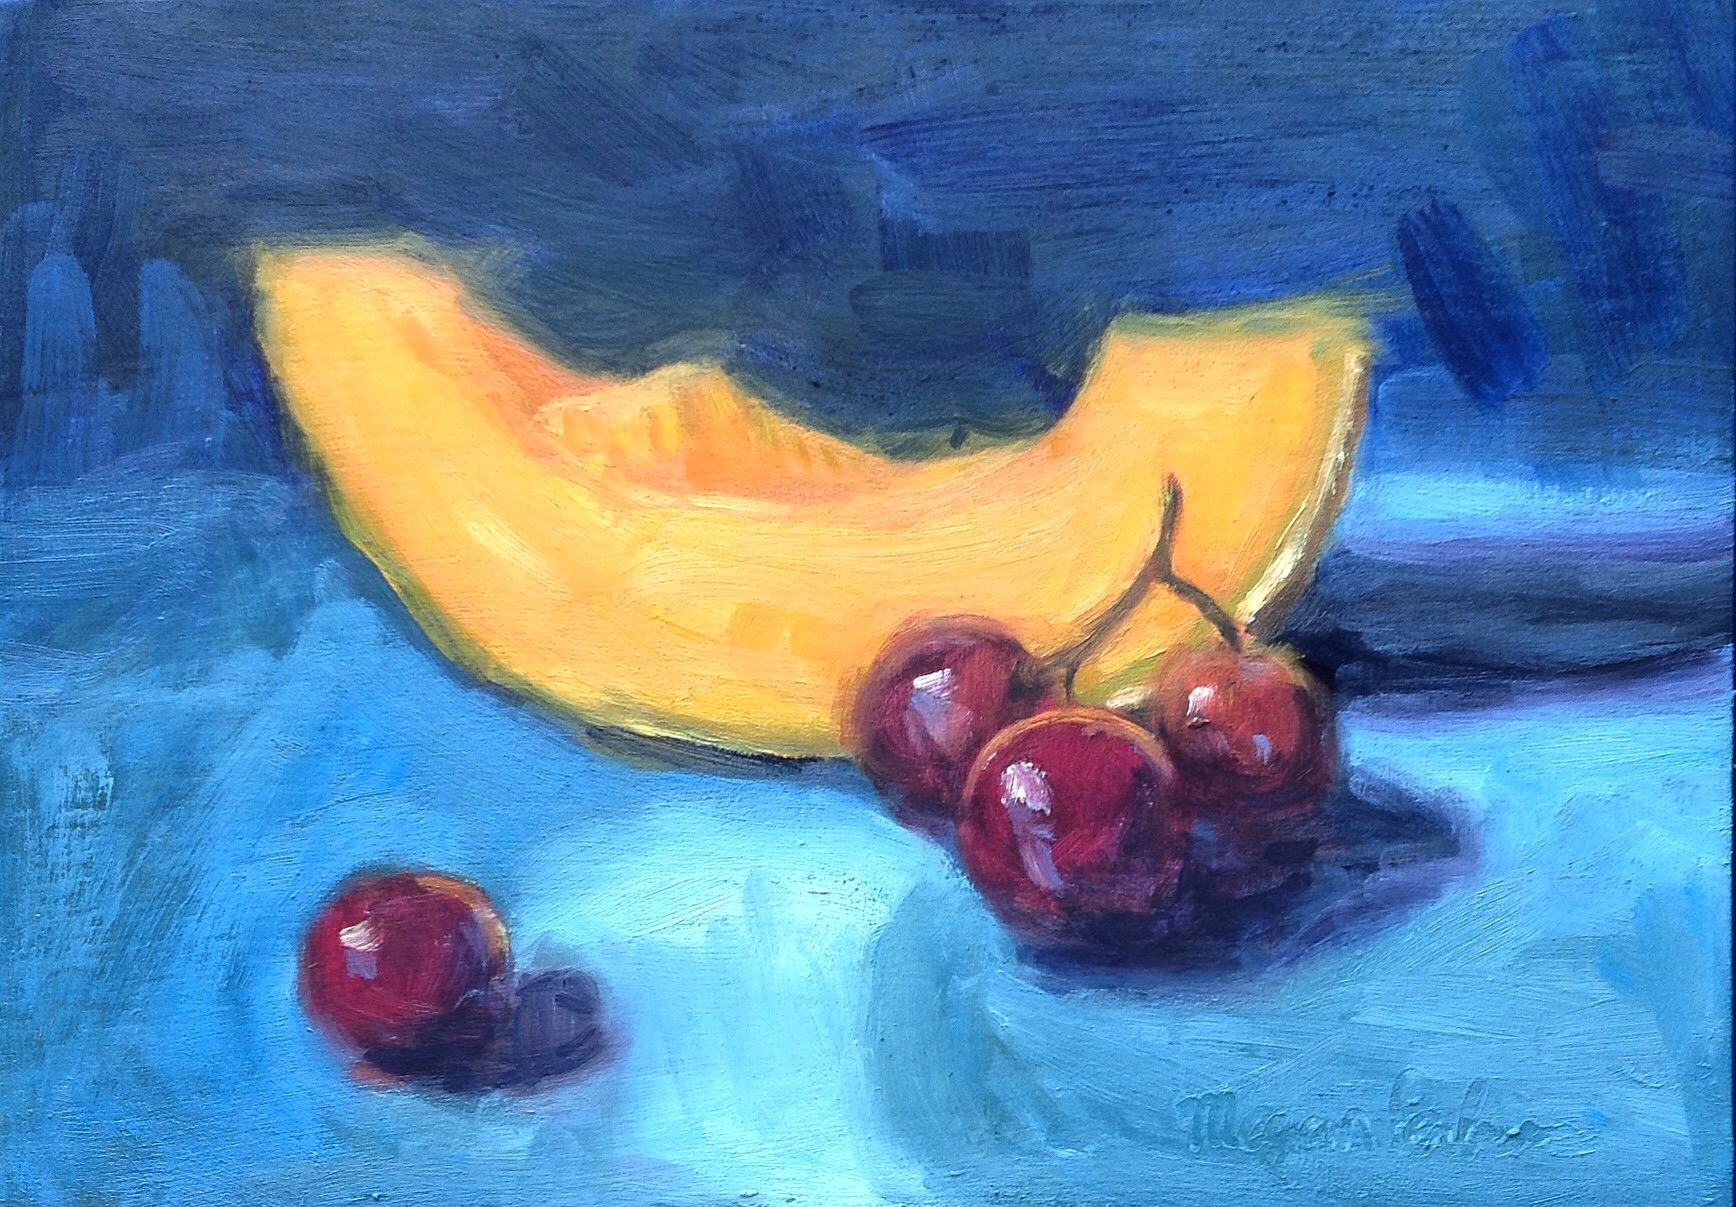 Fruit in the Blue